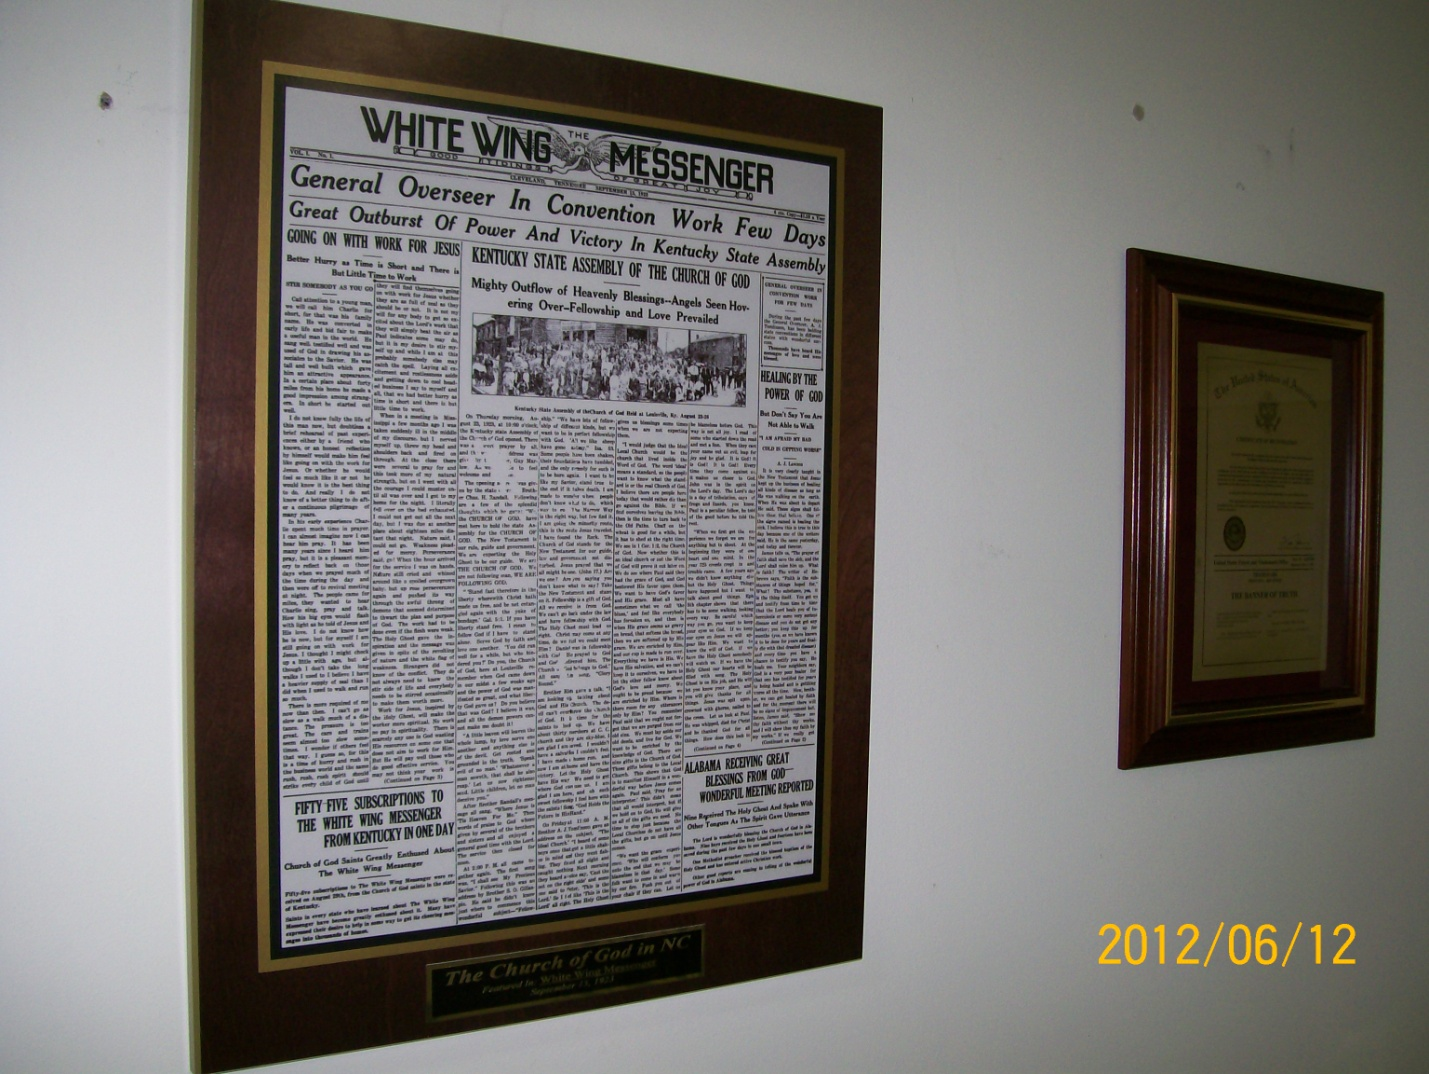 preserve old newspaper clippings and frame documents for display